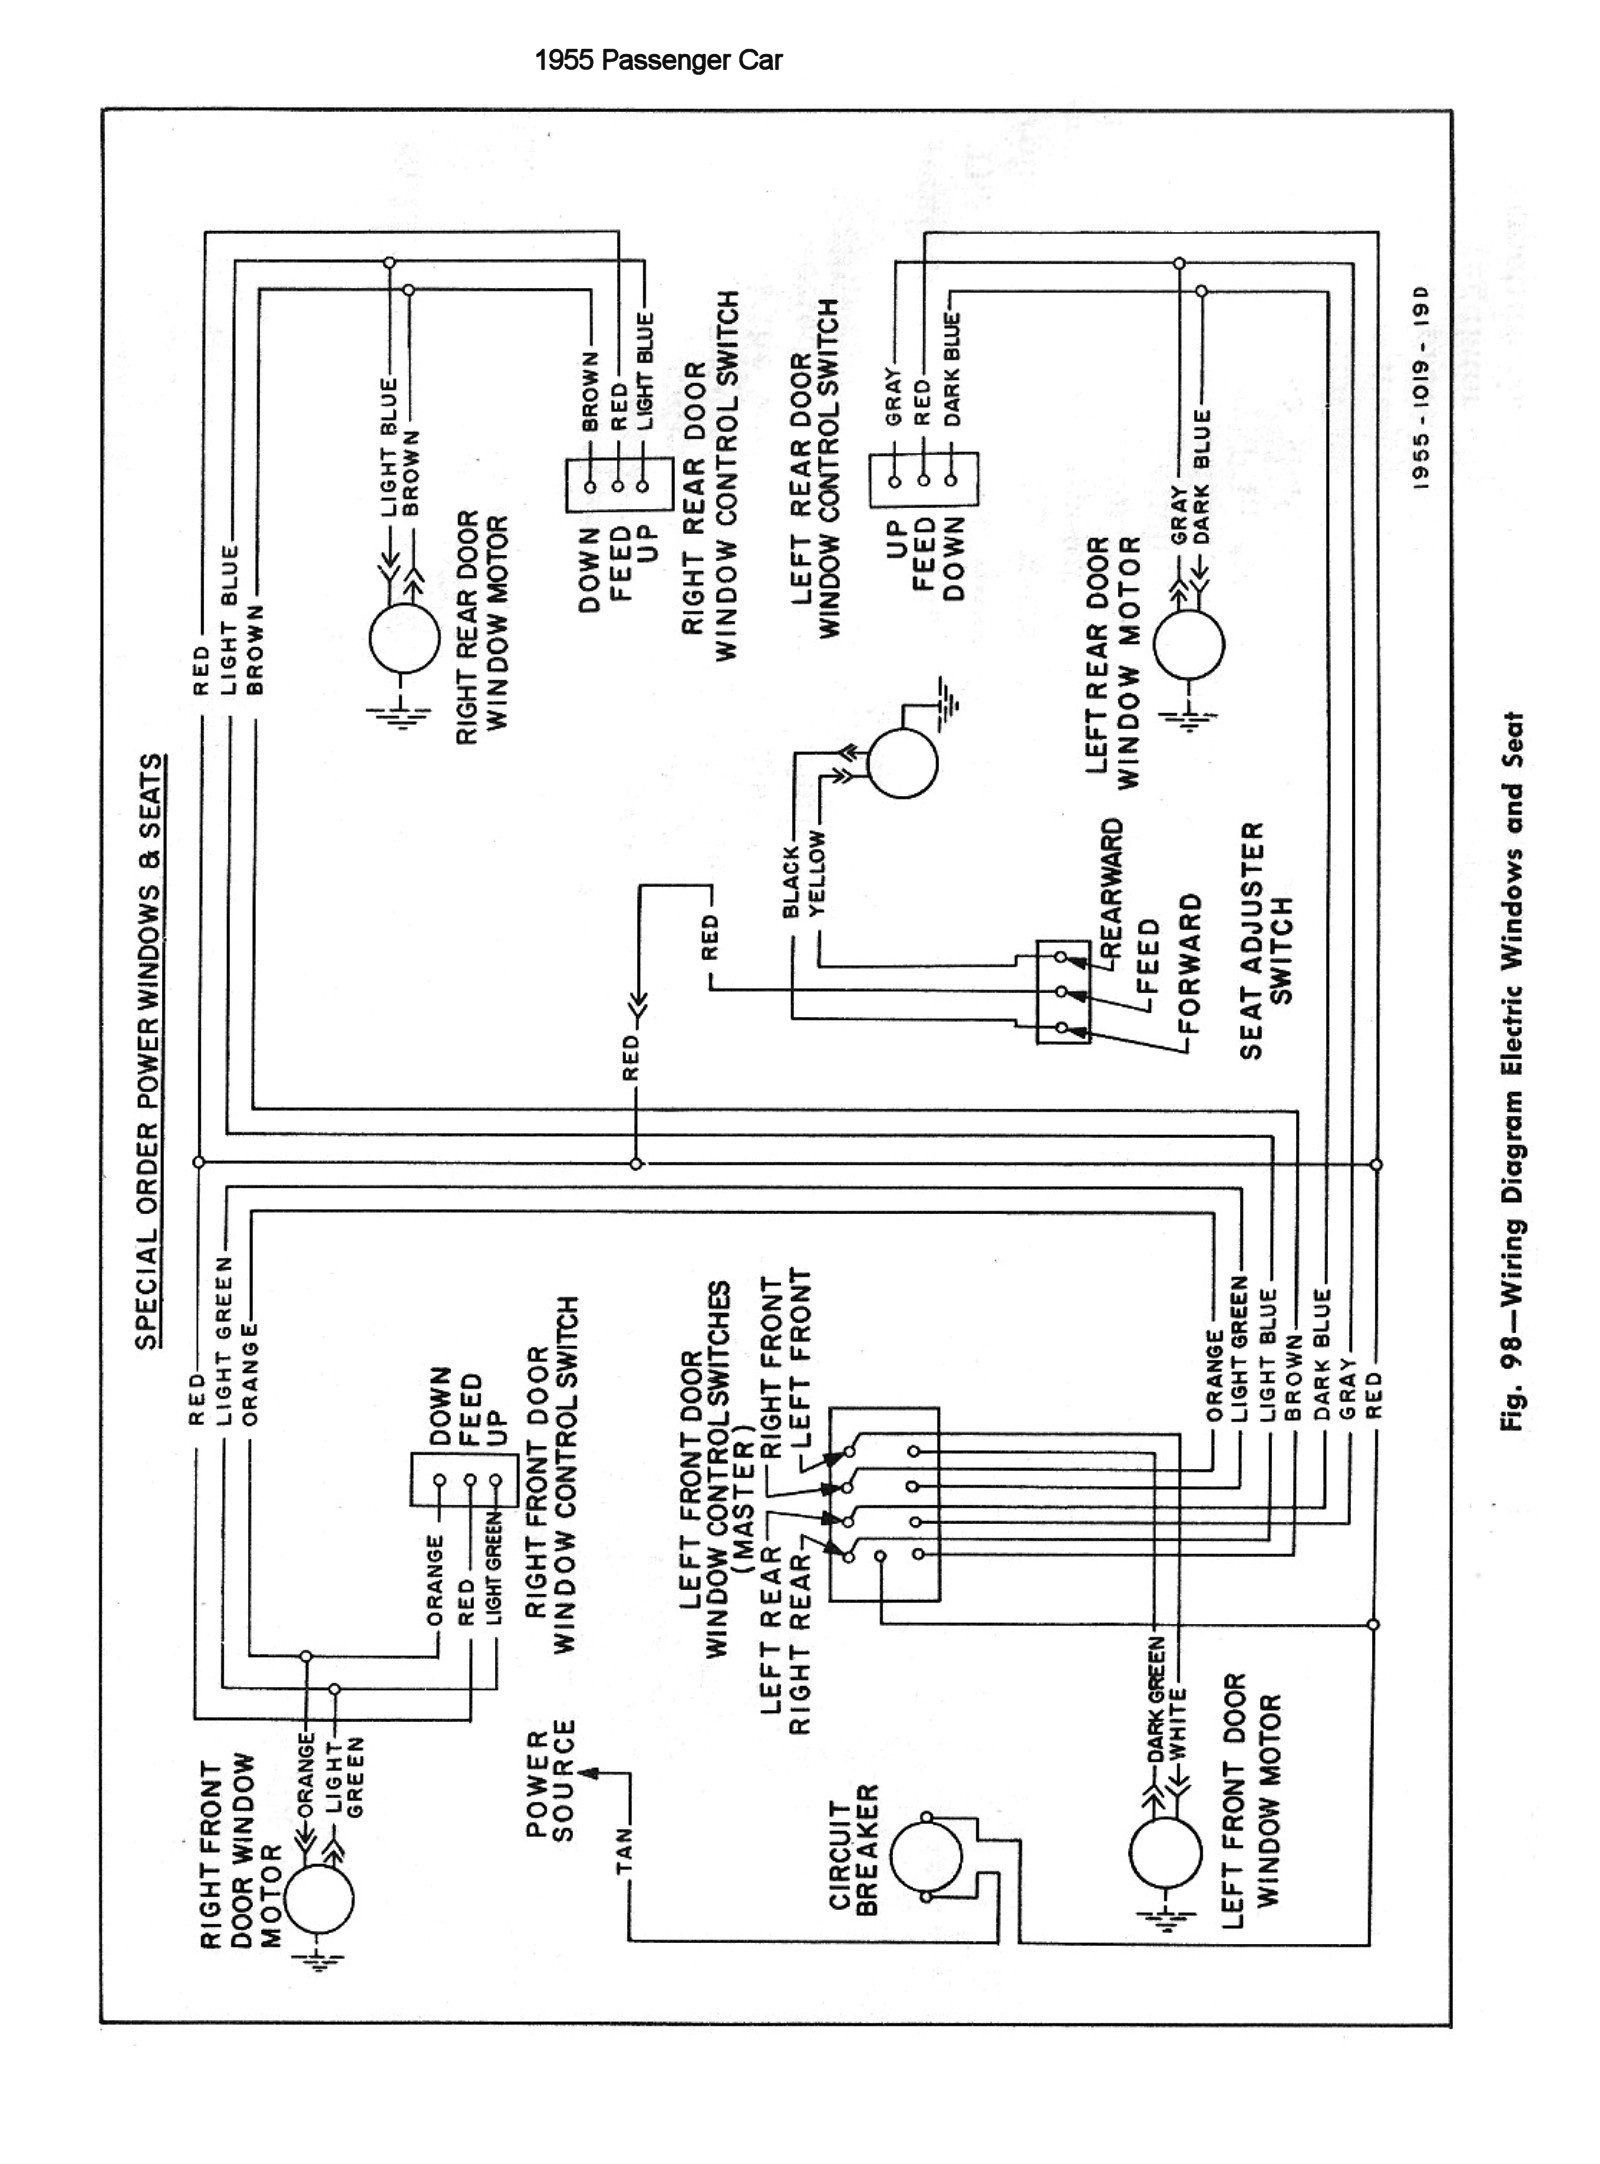 medium resolution of 1955 ford turn signal wiring diagram wiring diagram for you 1955 chevy turn signal wiring diagram